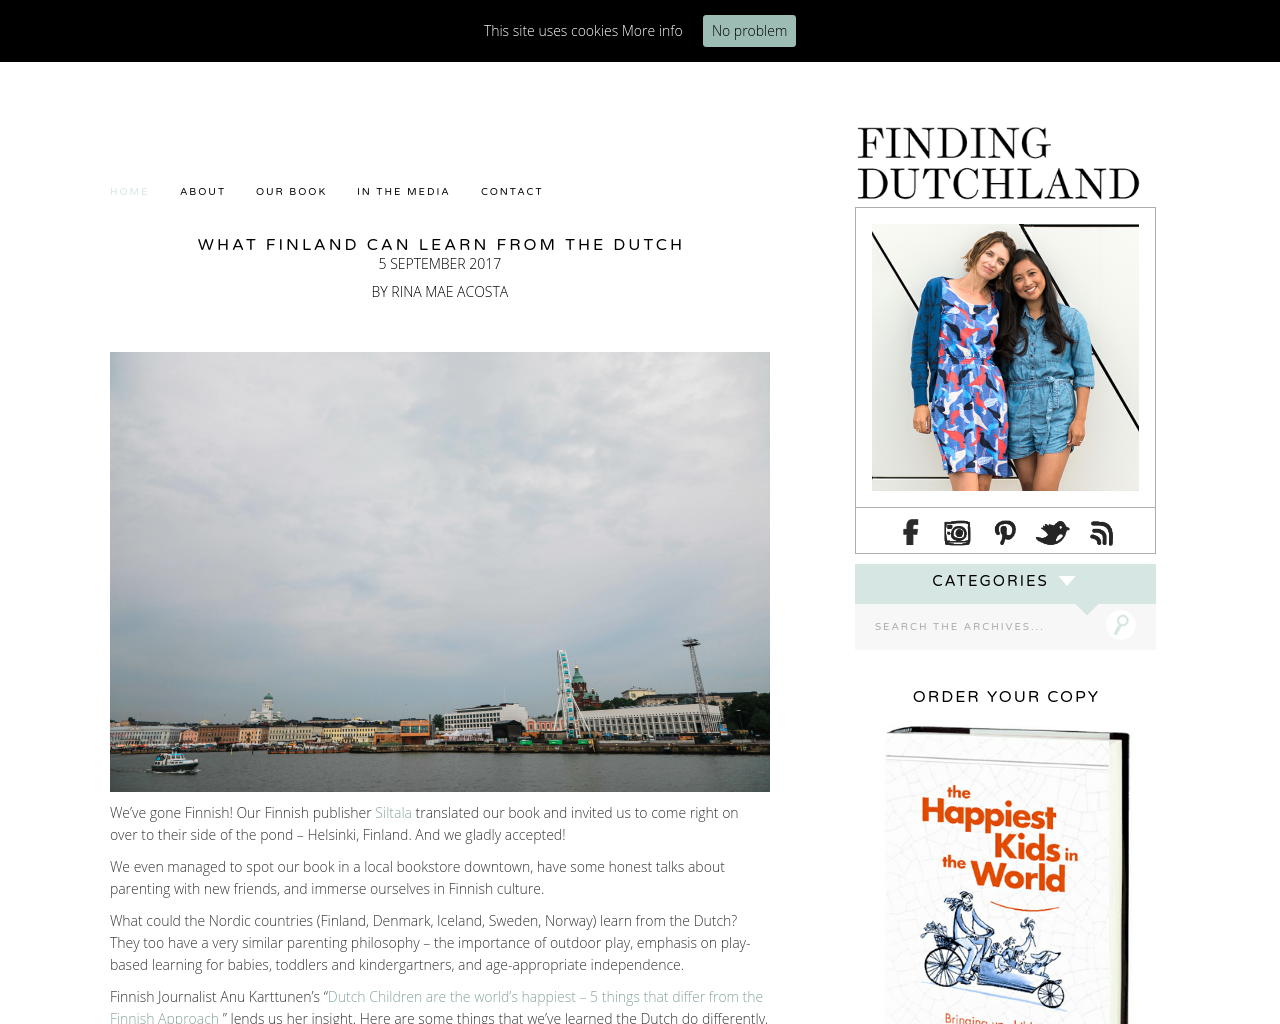 Finding-Dutchland-Advertising-Reviews-Pricing